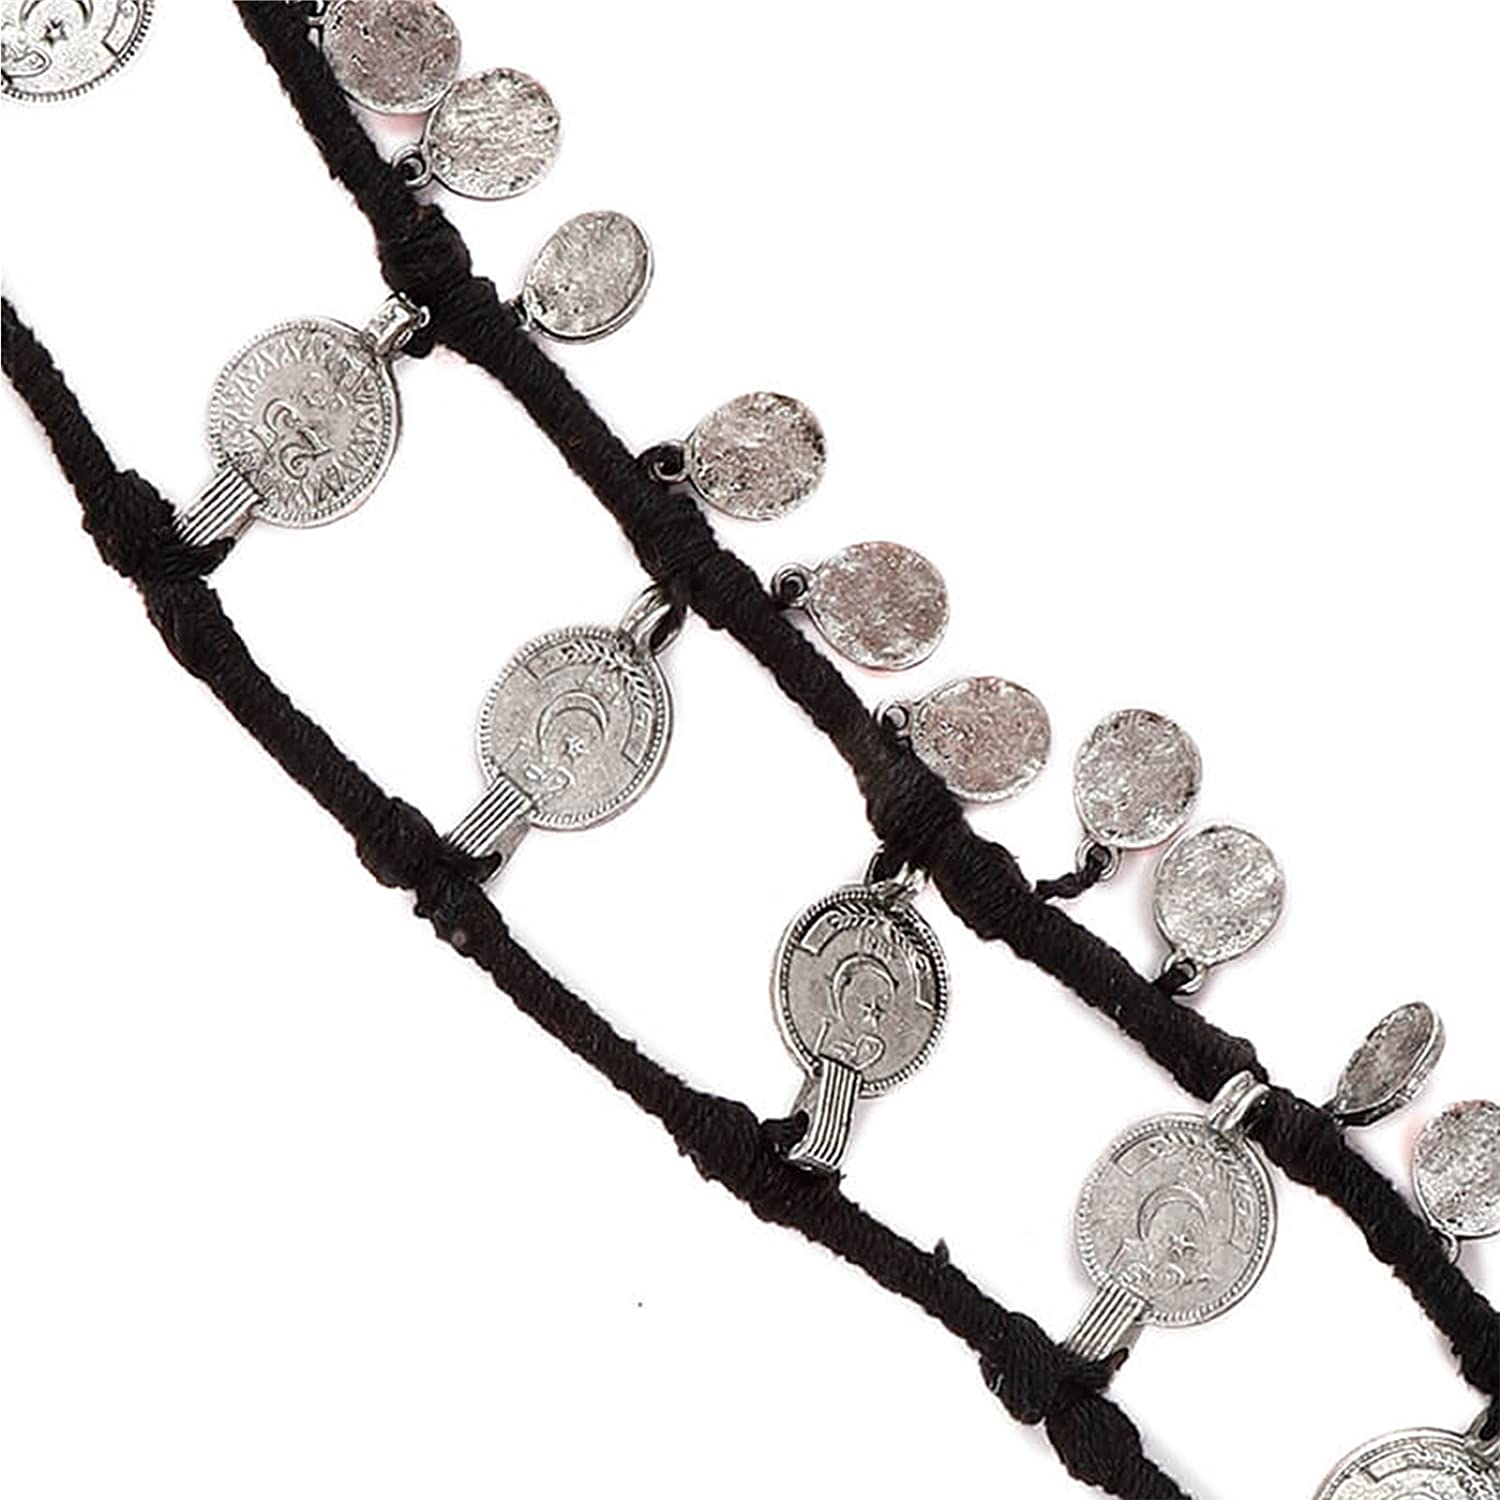 Tjori Anklet with German Silver Trinkets Handcrafted in Black Cotton Threads